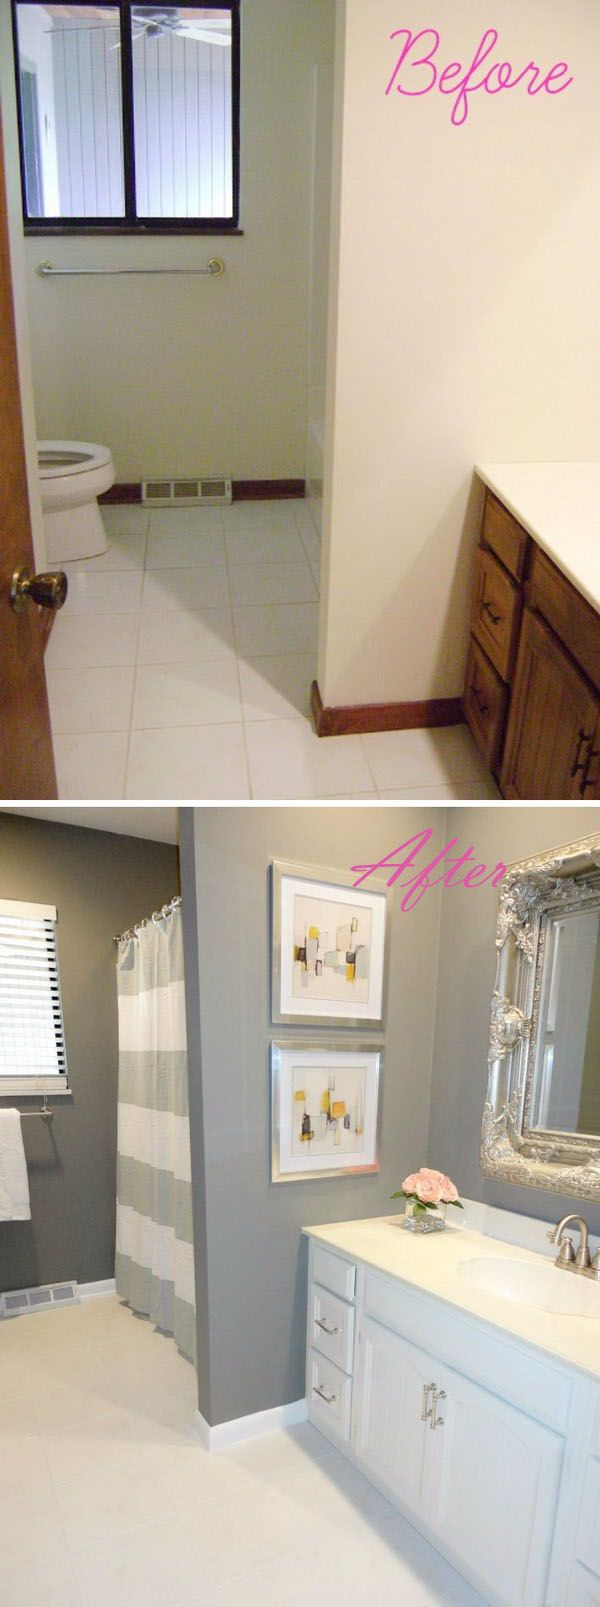 Cheap bathroom remodel before and after - Before And After 20 Awesome Bathroom Makeovers